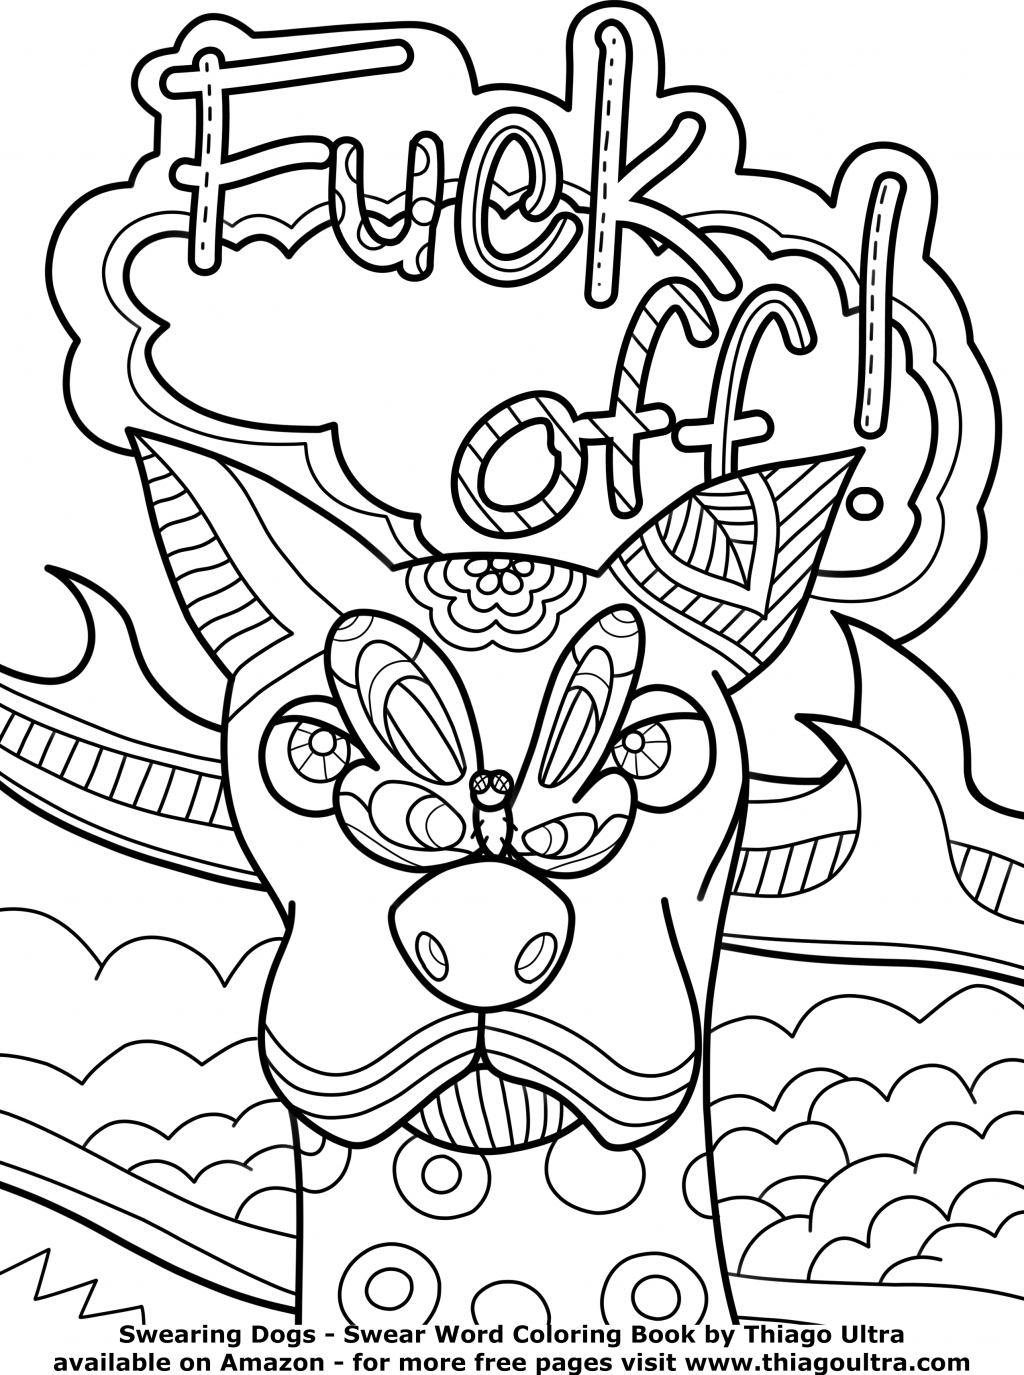 Coloring Pages Curse Words At Getdrawings | Free For Personal - Free Printable Coloring Pages For Adults Only Swear Words